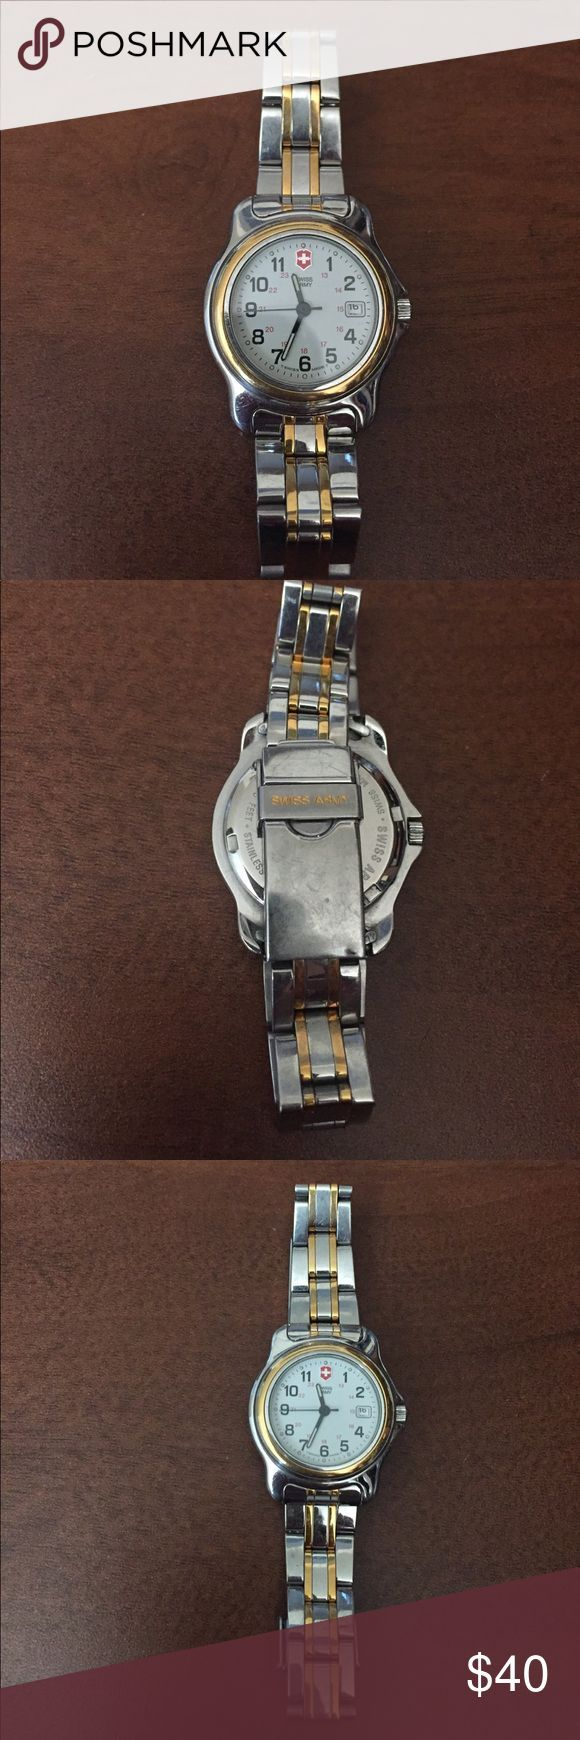 Swiss Army Watch This is a Swiss Army Watch, needs a new batterie. Accessories Watches